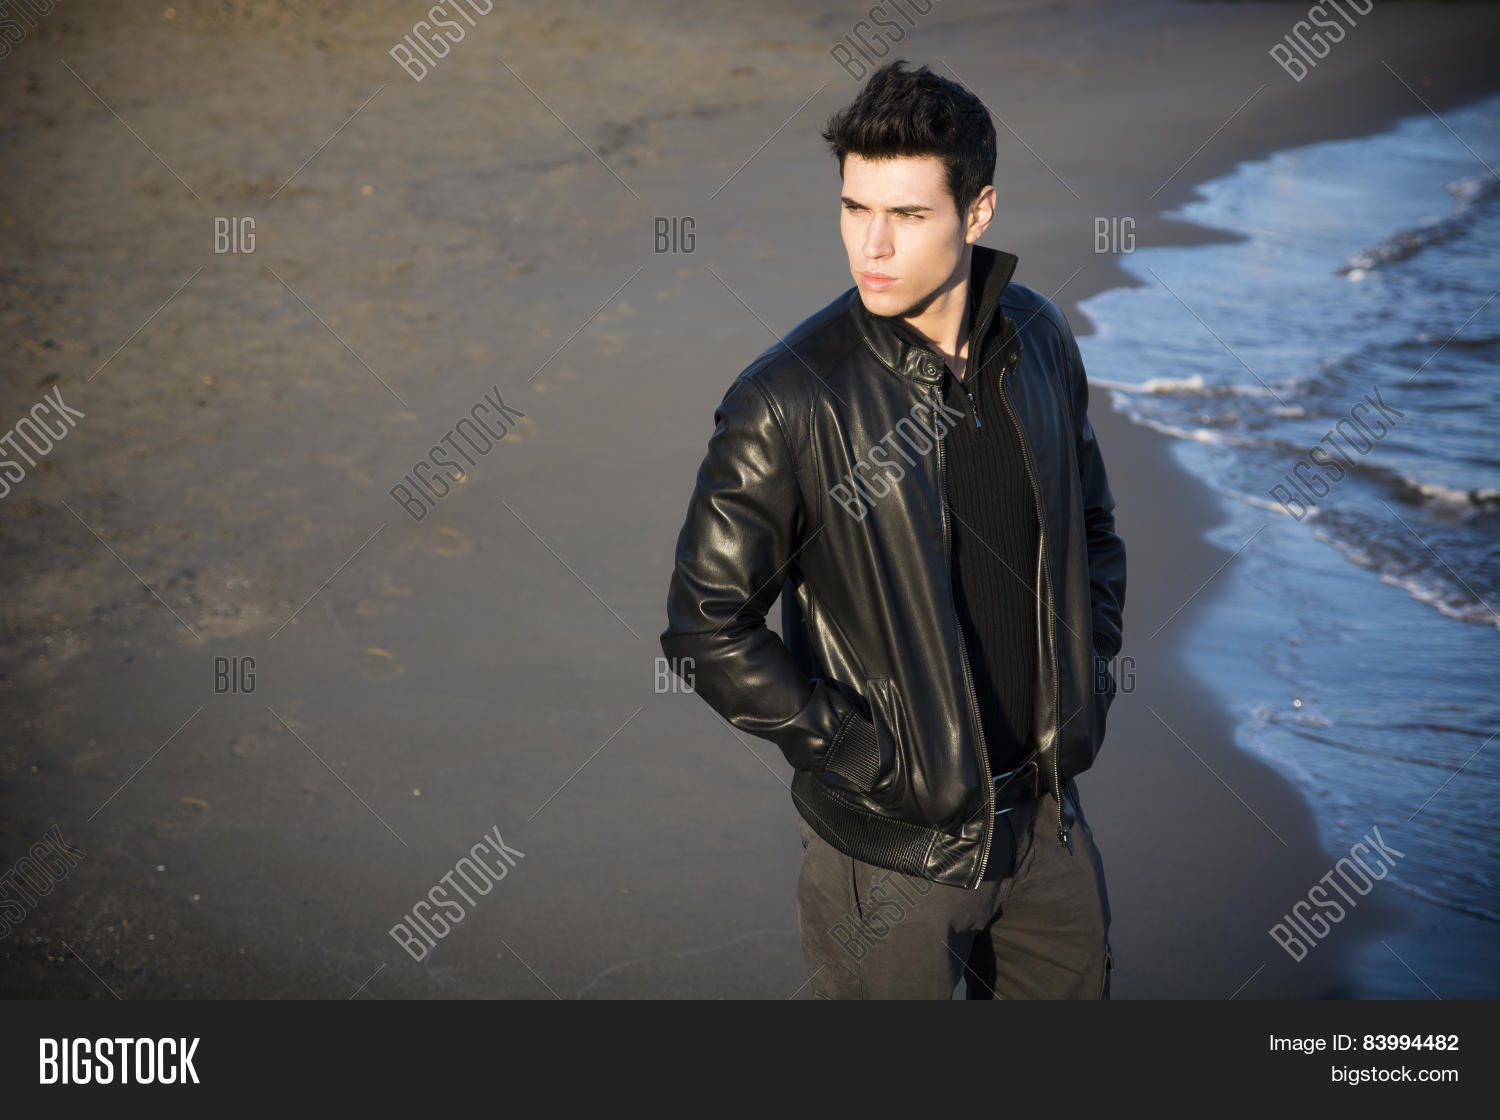 Attractive Young Man Image Photo Free Trial Bigstock